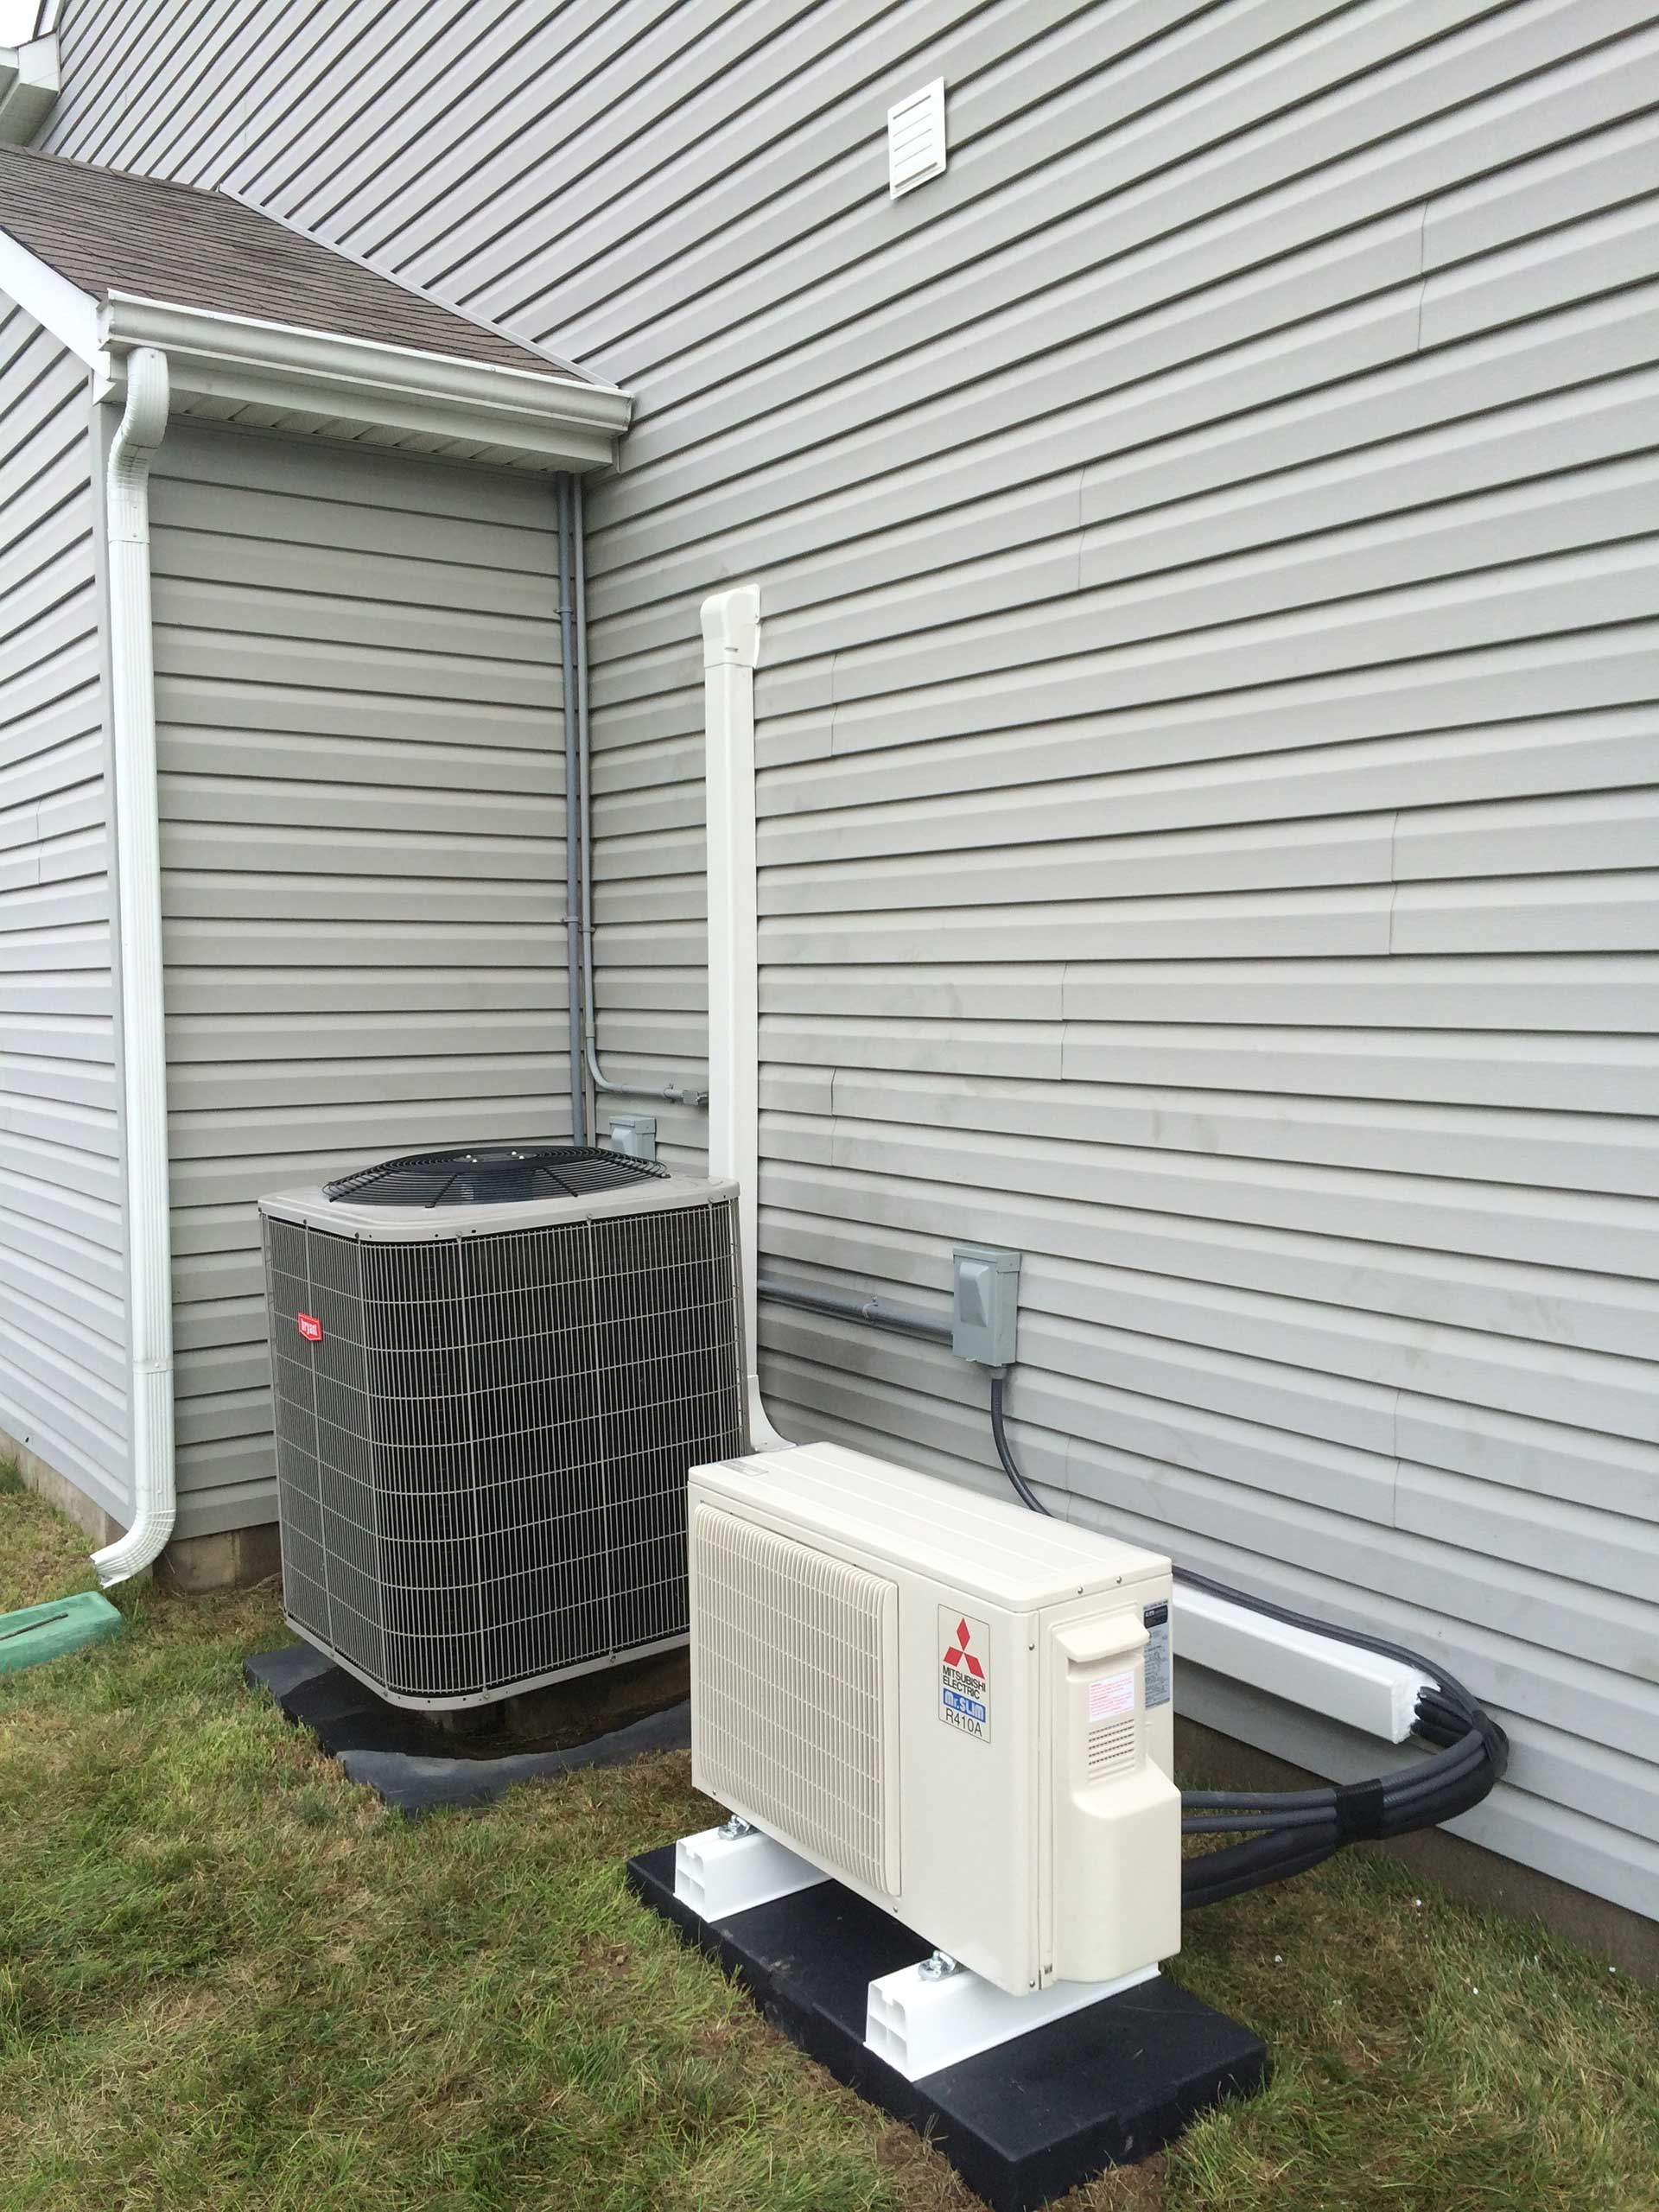 Bryant Heat Pump with supplemental Mitsubishi Ductless System